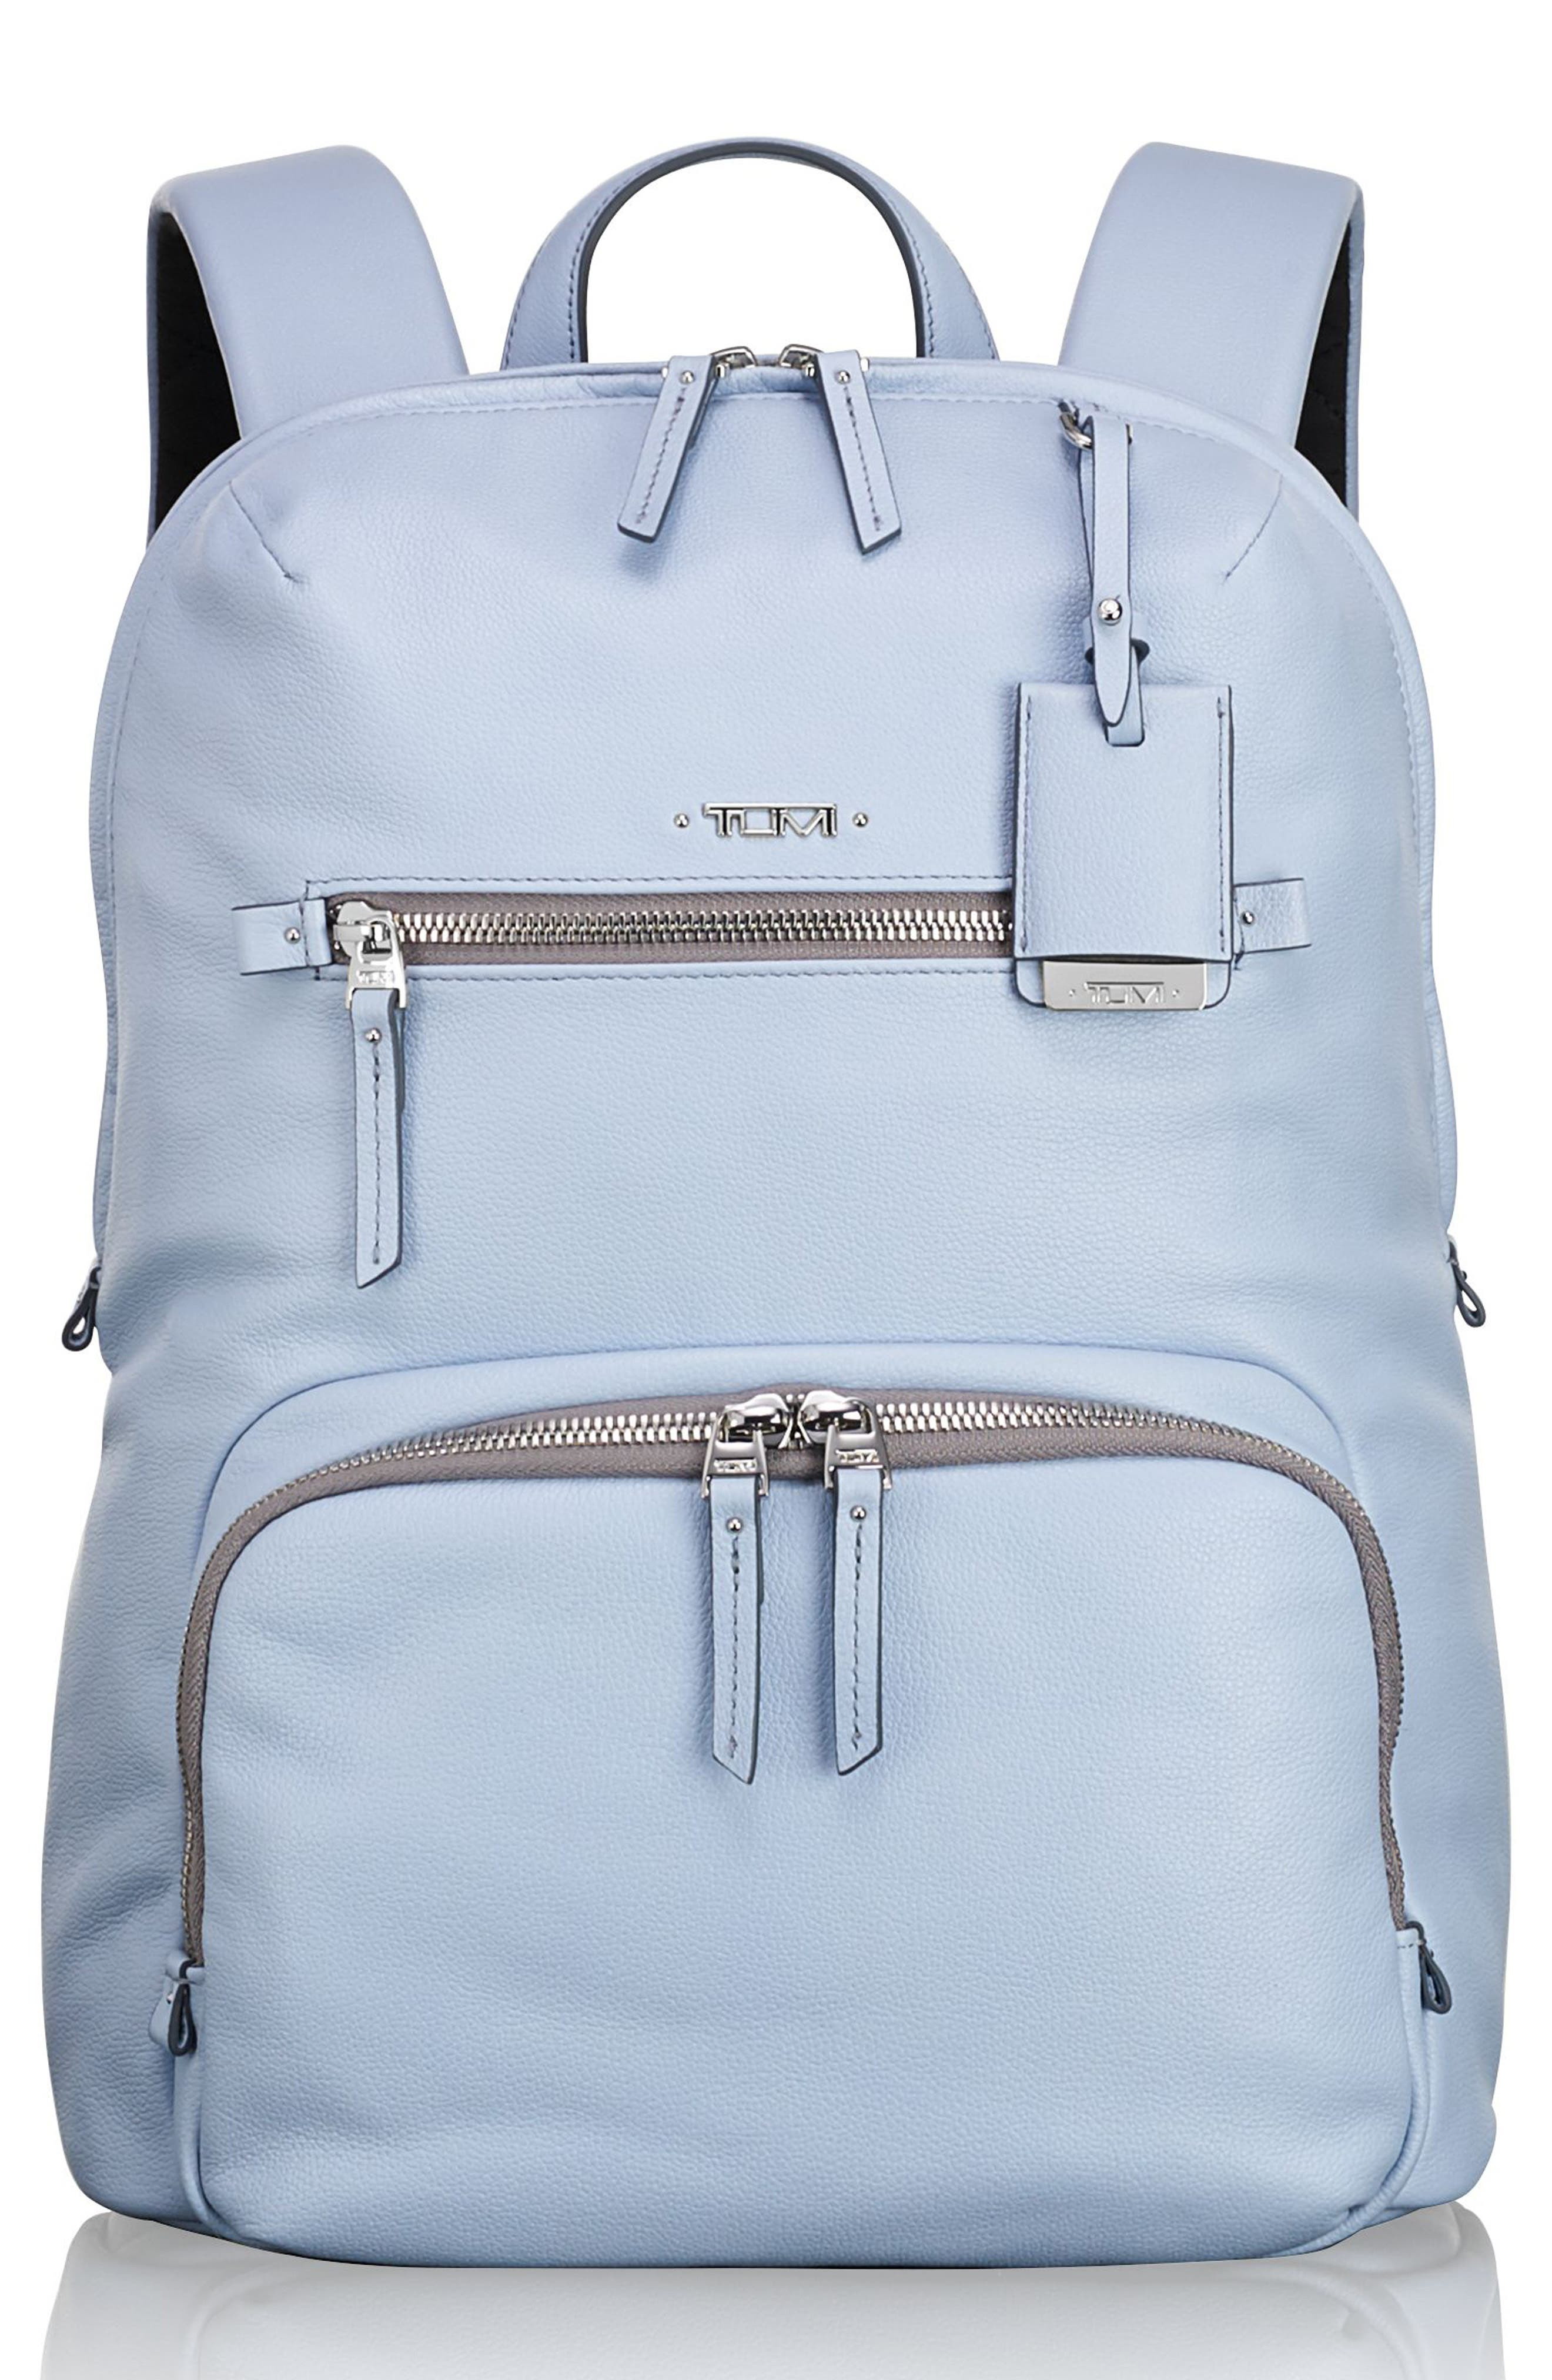 Main Image - Tumi Voyageur Halle Leather Backpack (Limited Edition)